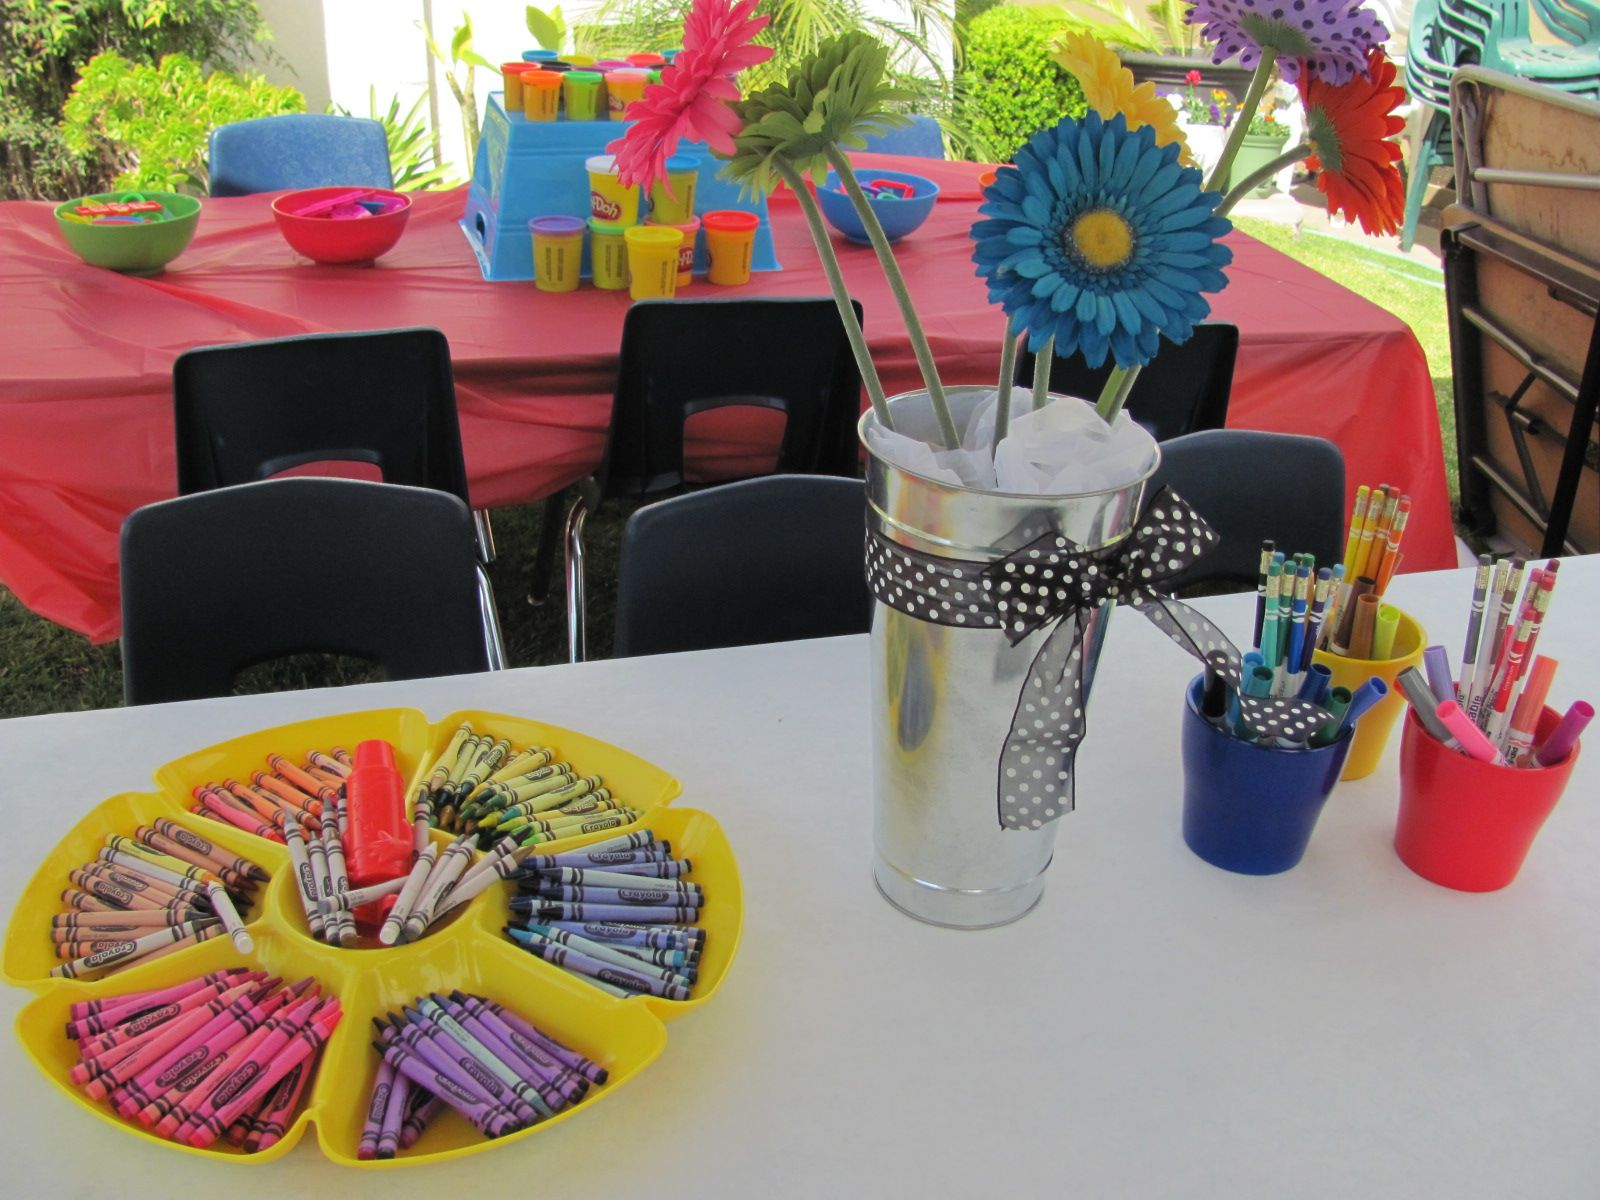 Crayola Birthday Party Coloring Station On A Paper Covered Table Crayola Birthday Party Crayon Birthday Parties Crayola Coloring Pages